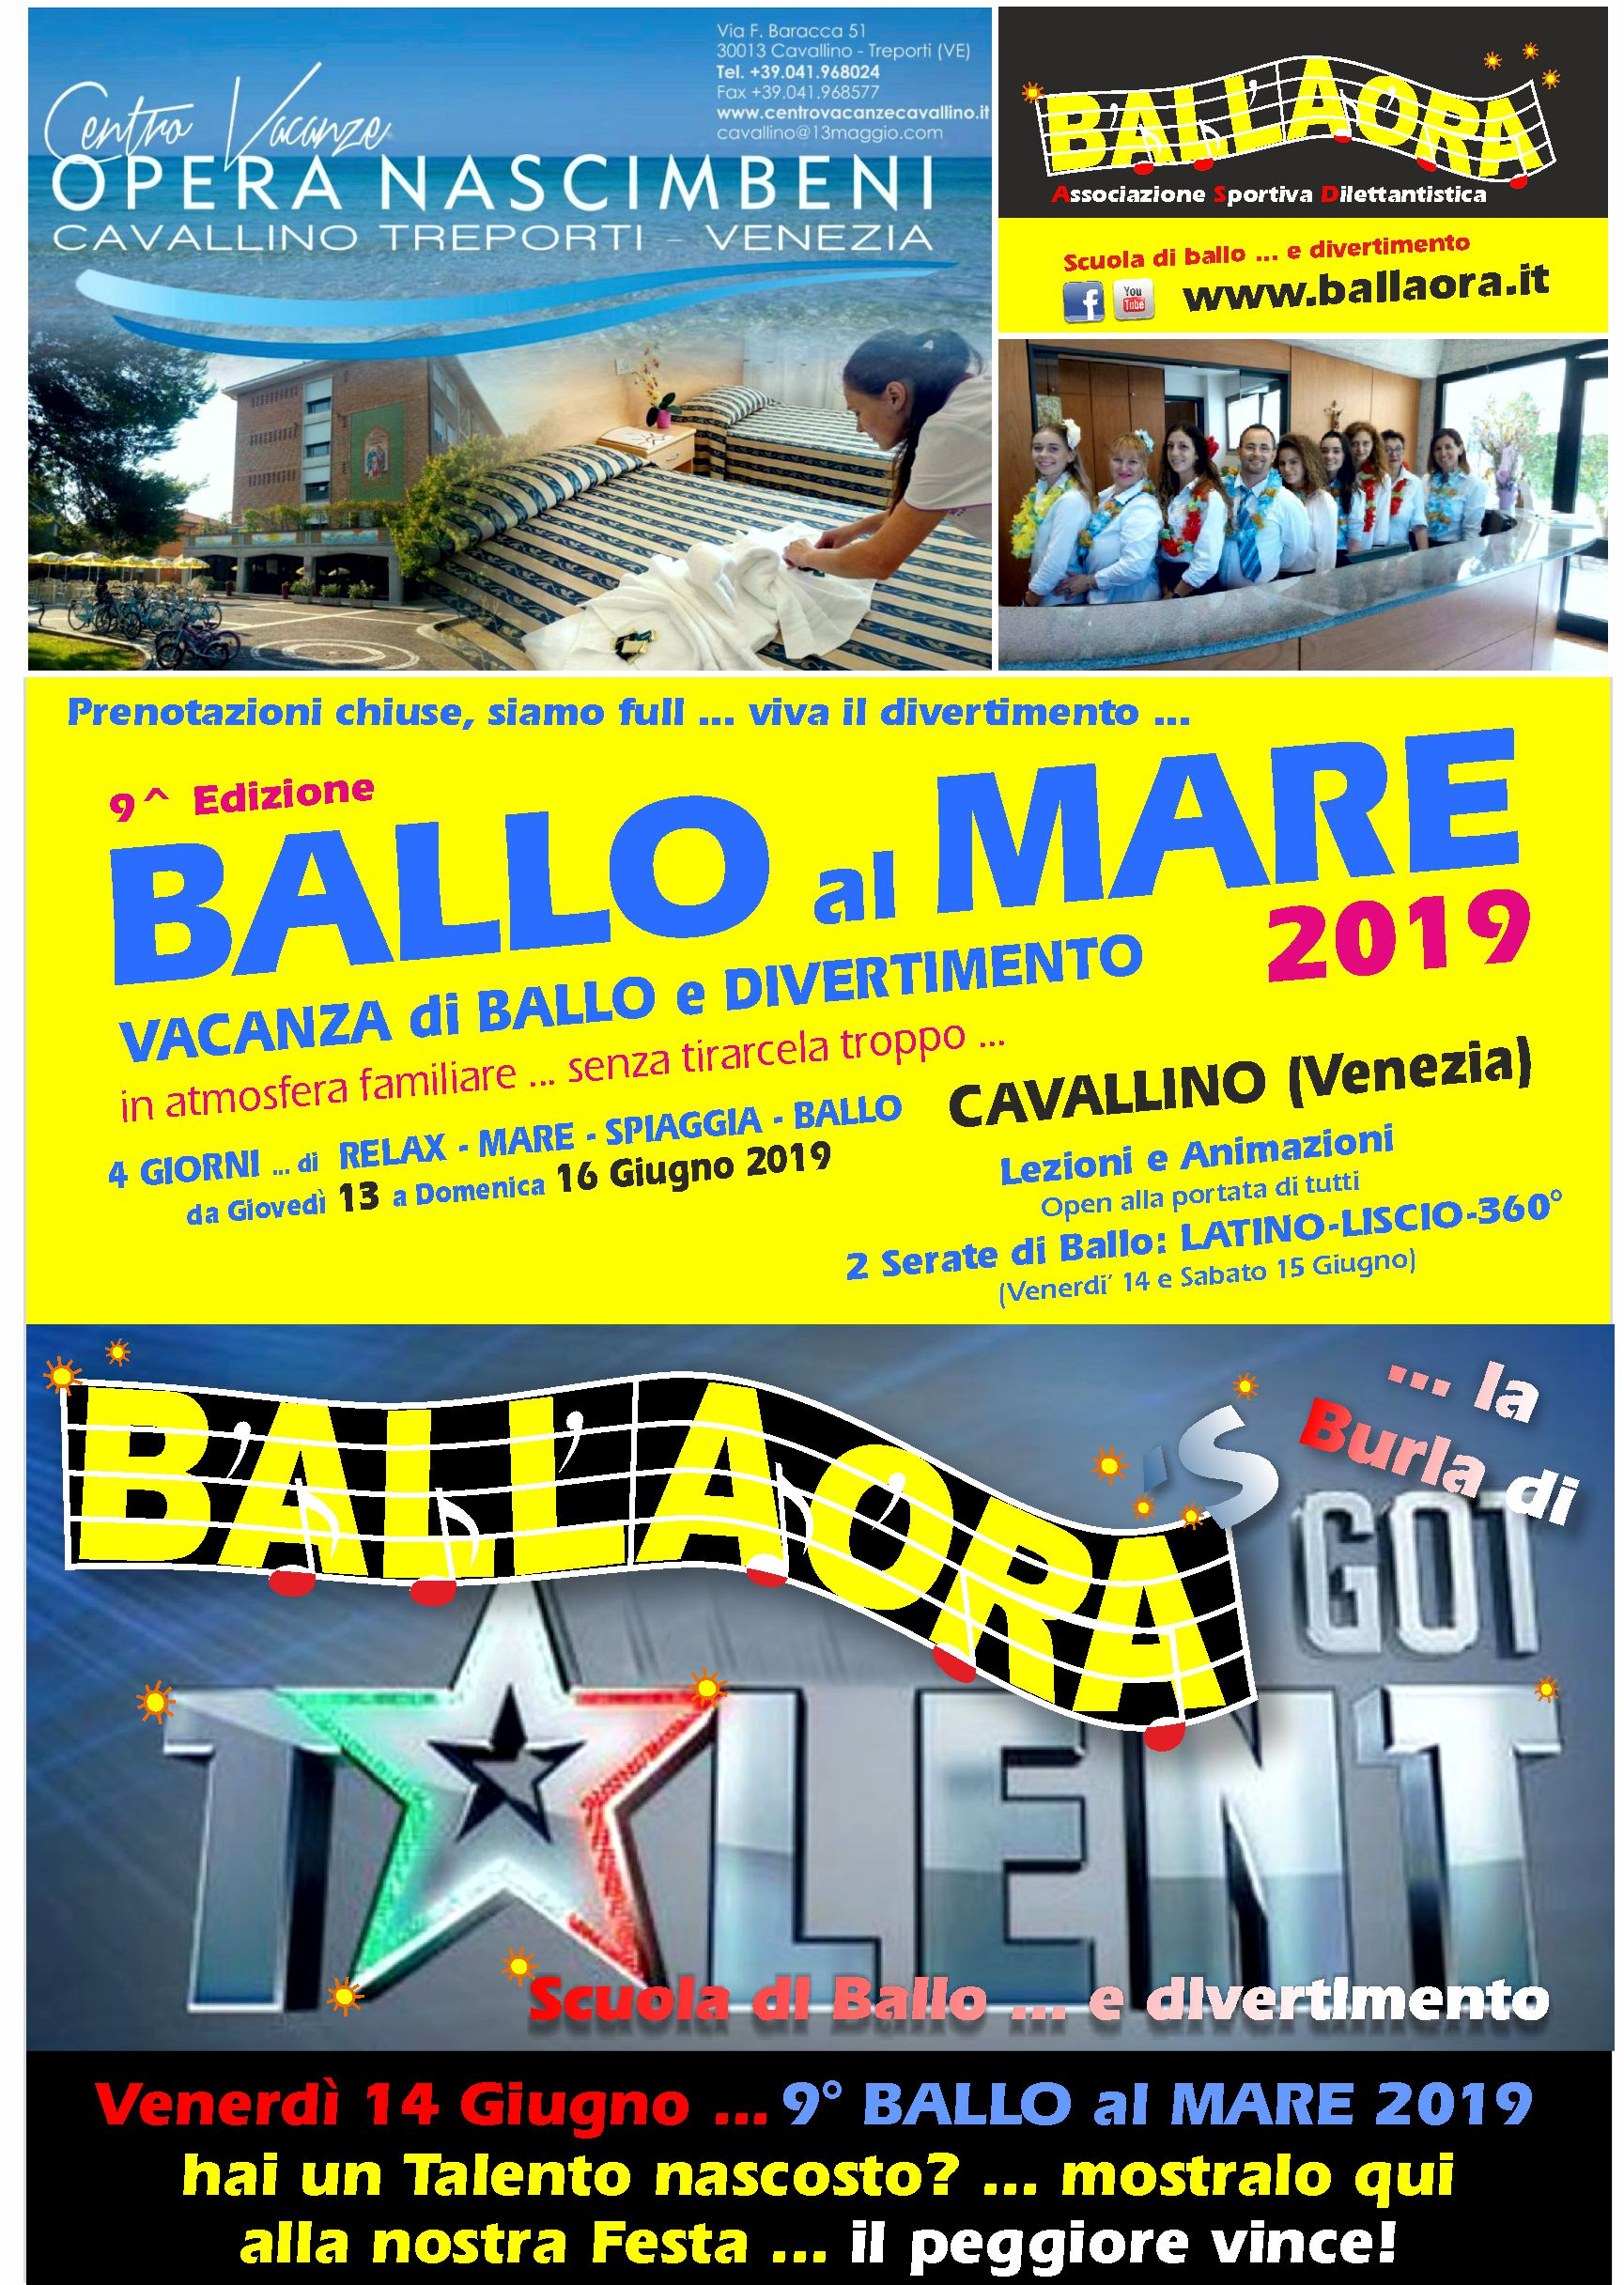 ballaora s got talent